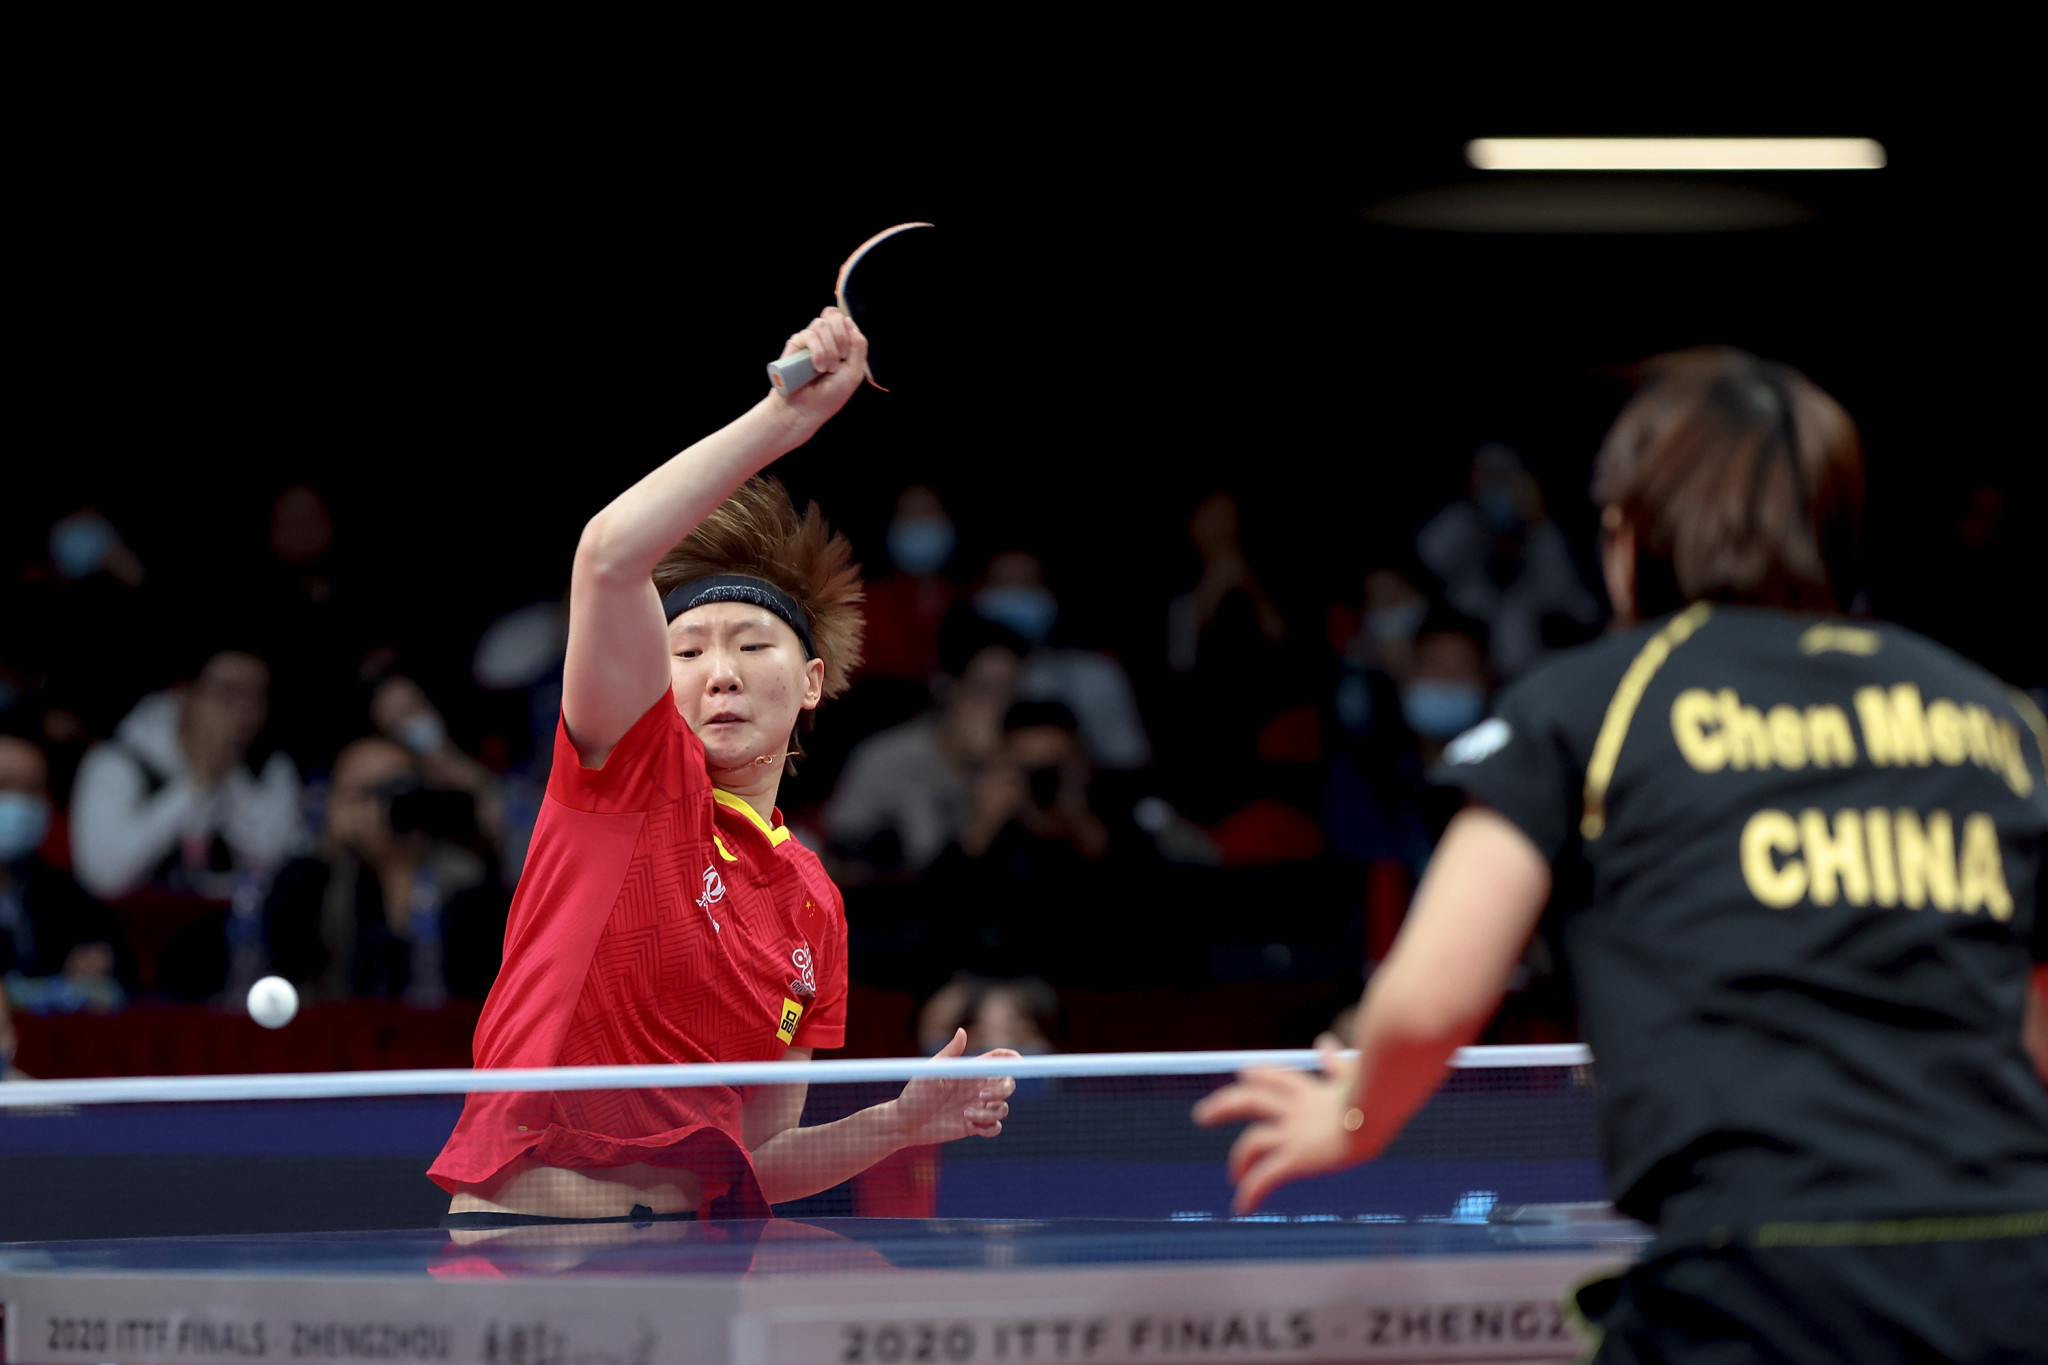 "#RESTART series described as ""one of the most important things"" achieved by ITTF"